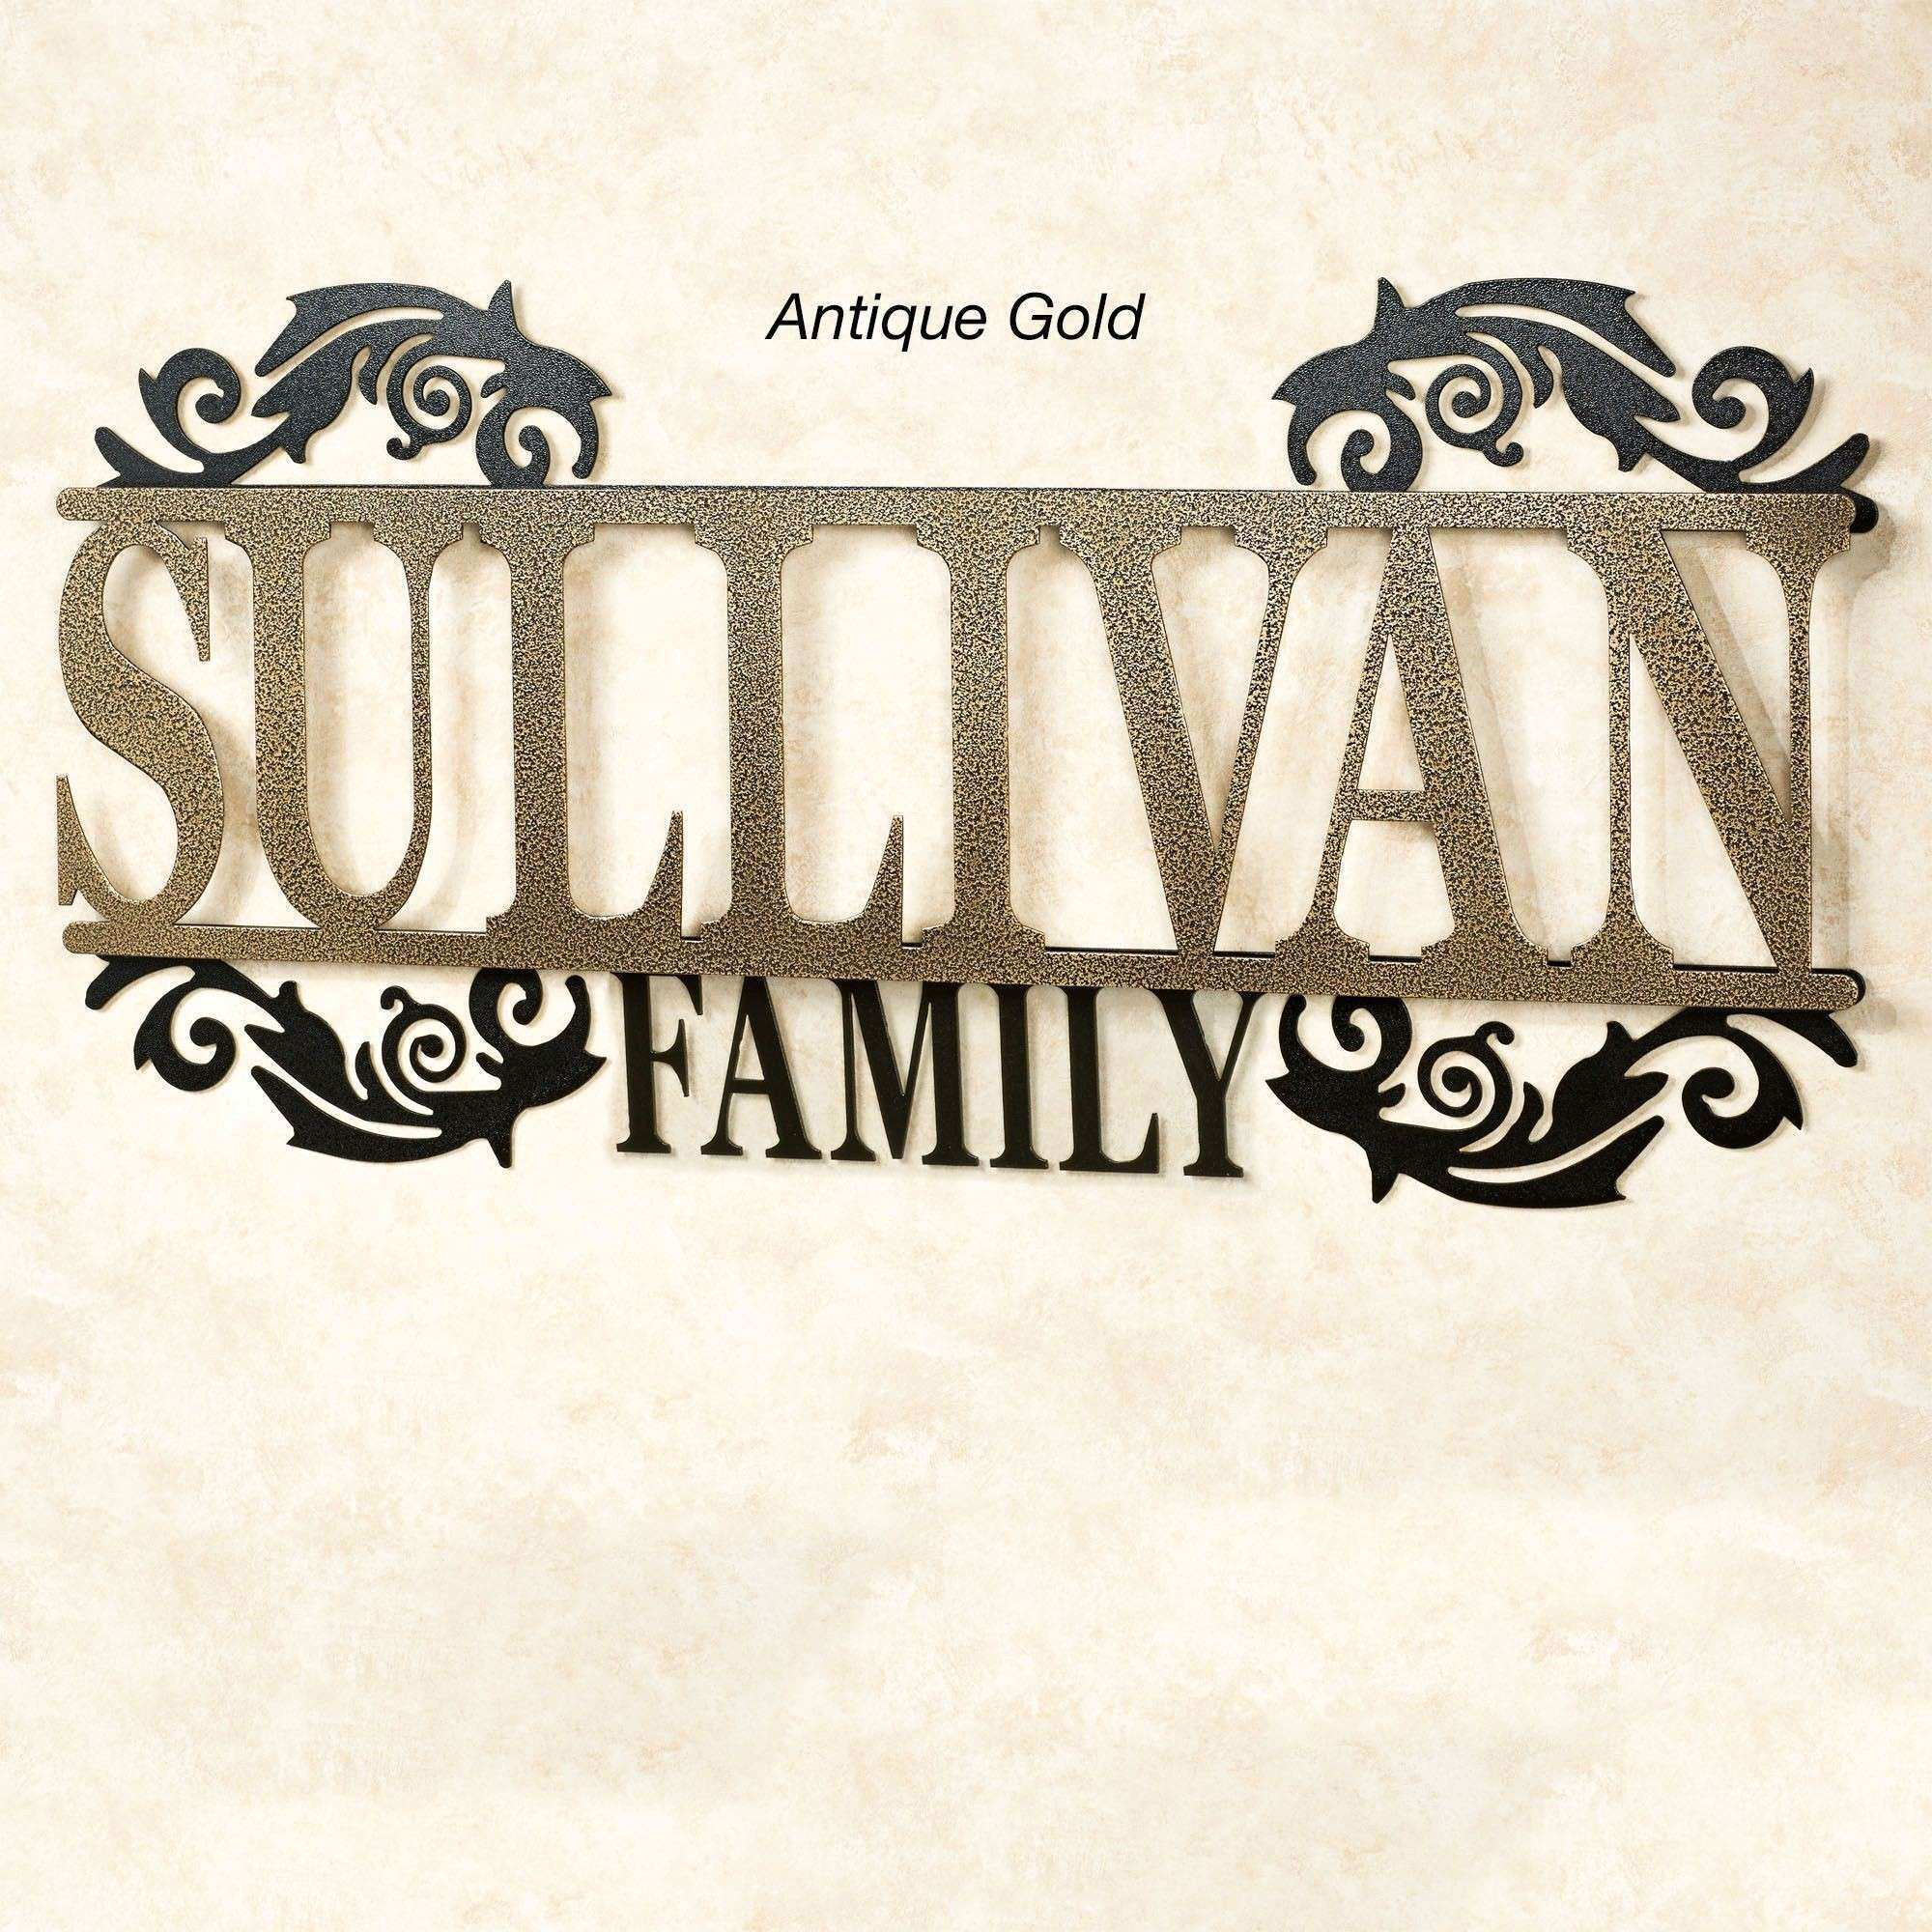 Legacy Family Personalized Metal Wall Art Sign by JasonW